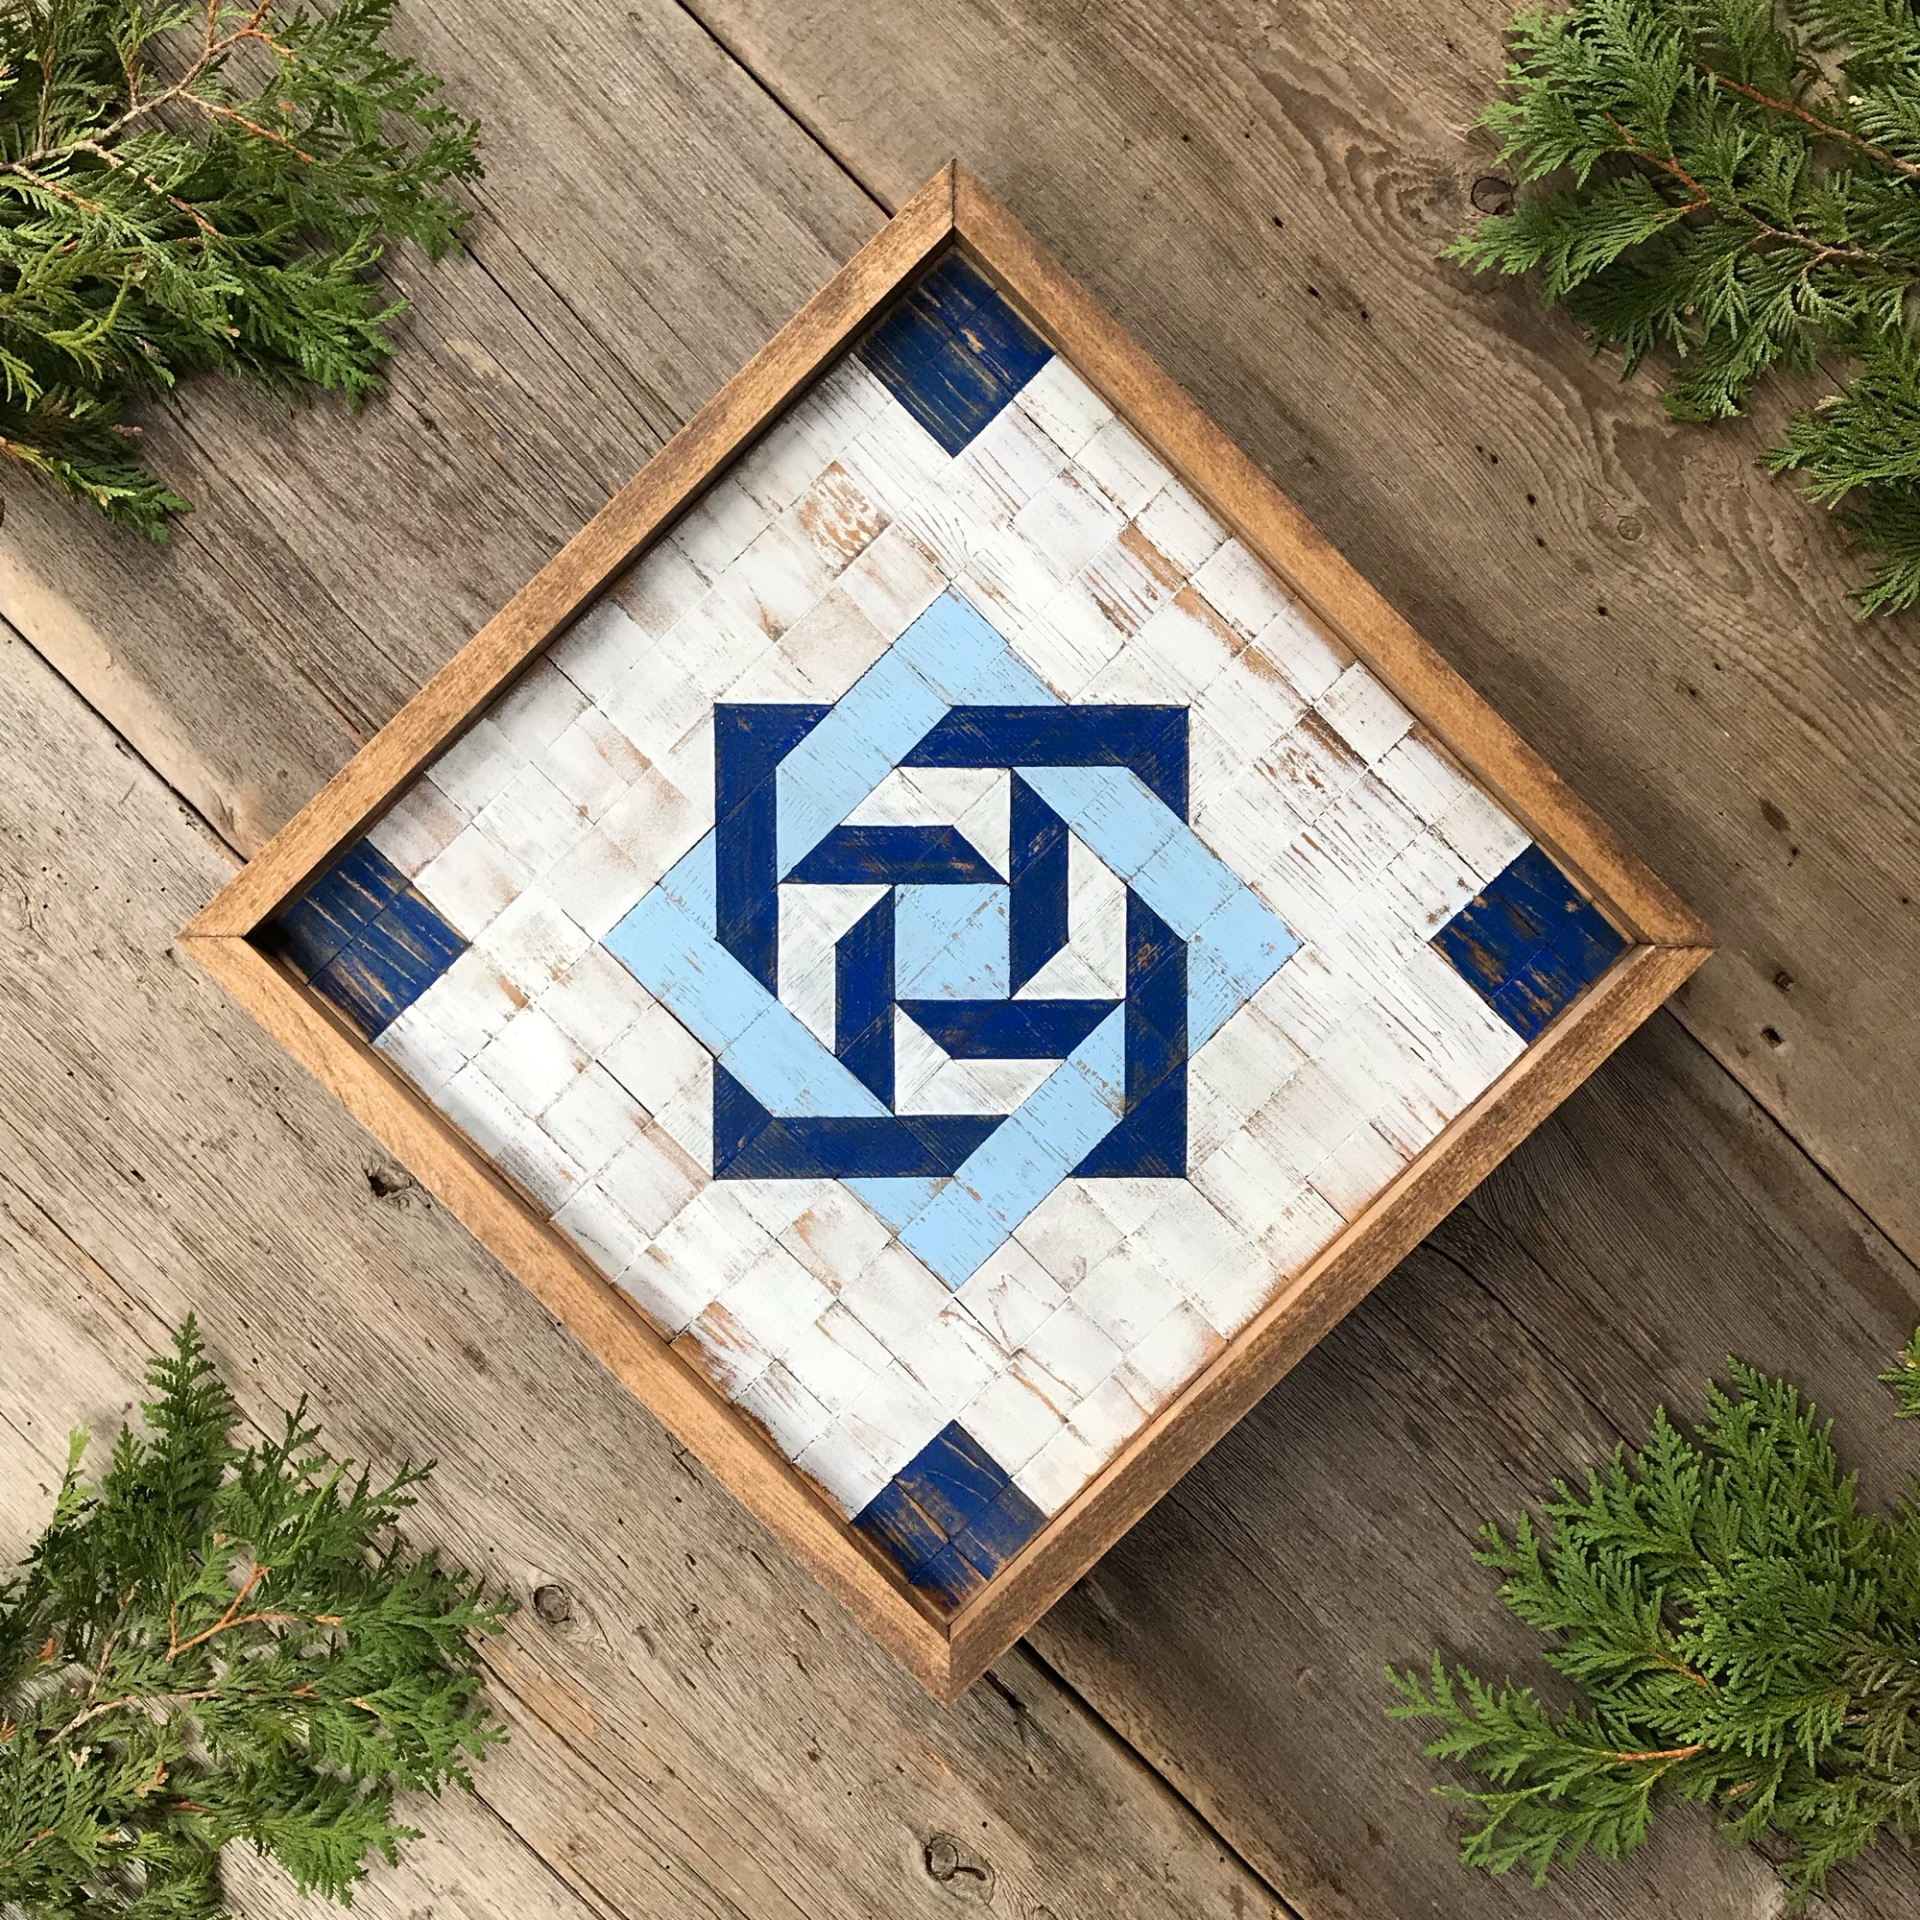 Barn Quilts, Wood Barn Quilt, Quilt Wall Art, Geometric Patterns, Slip Knot Quilt Square, Wood Quilt Block